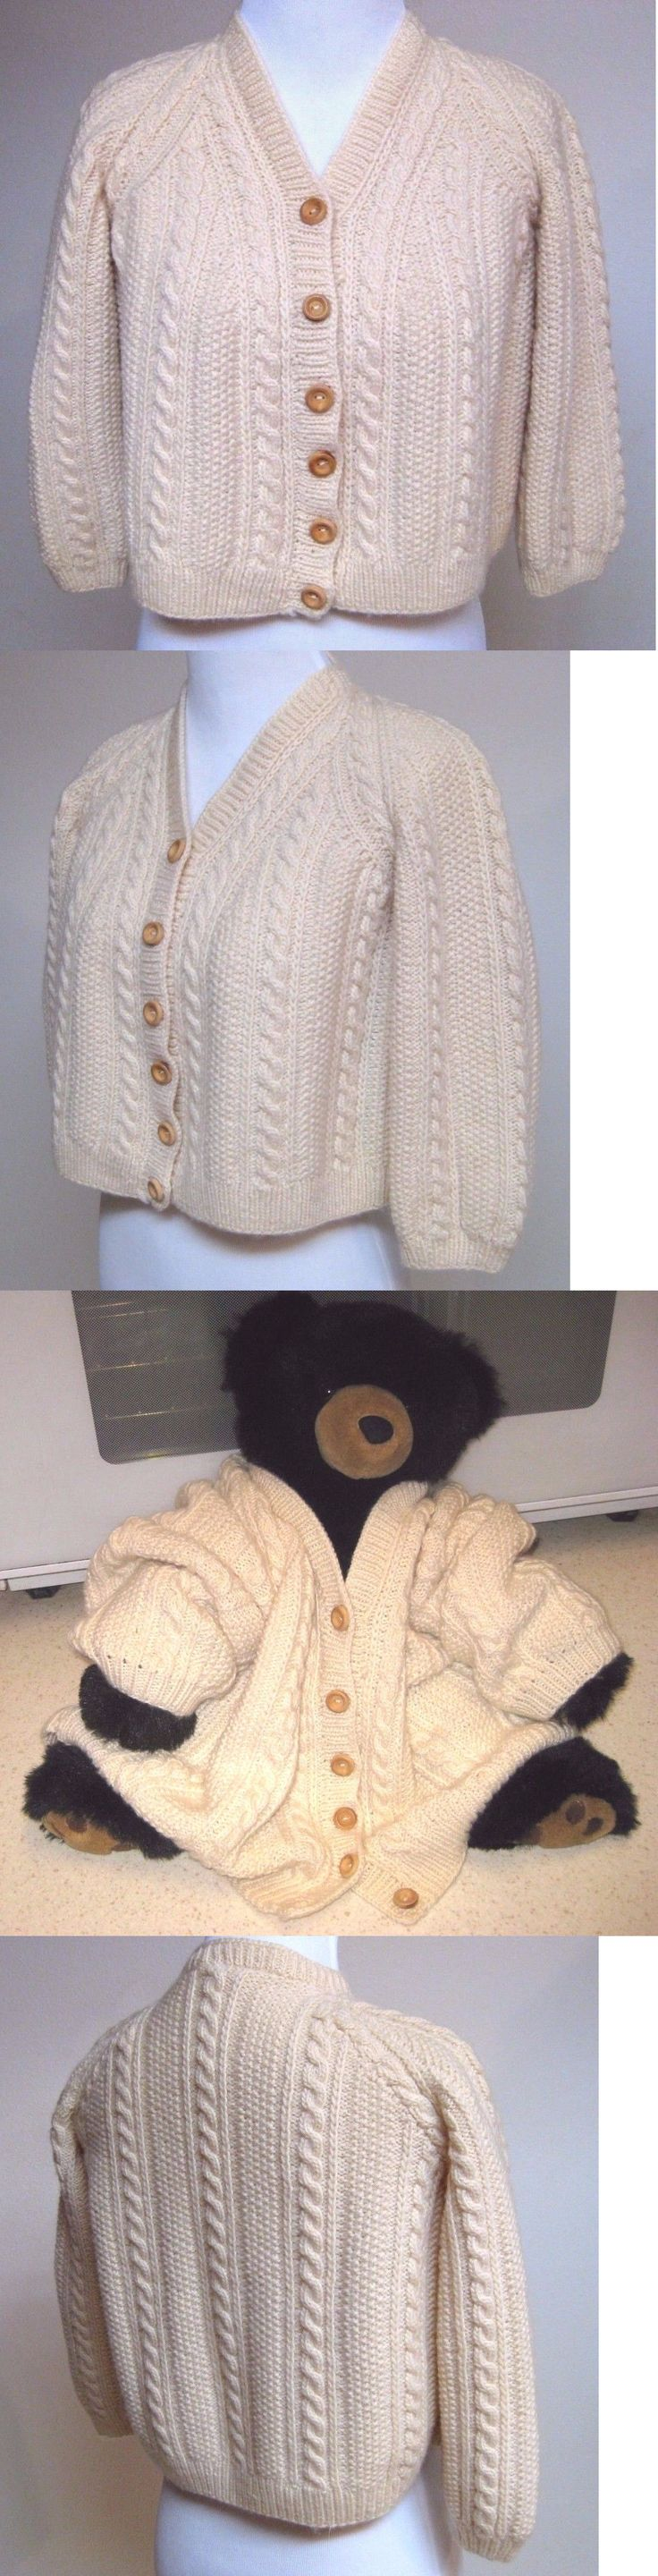 Sweaters 175657: New Unisex Childs Hand Knit Cables Aran Sweater Raglan Ivory Shower Baby Gift -> BUY IT NOW ONLY: $64.99 on eBay!